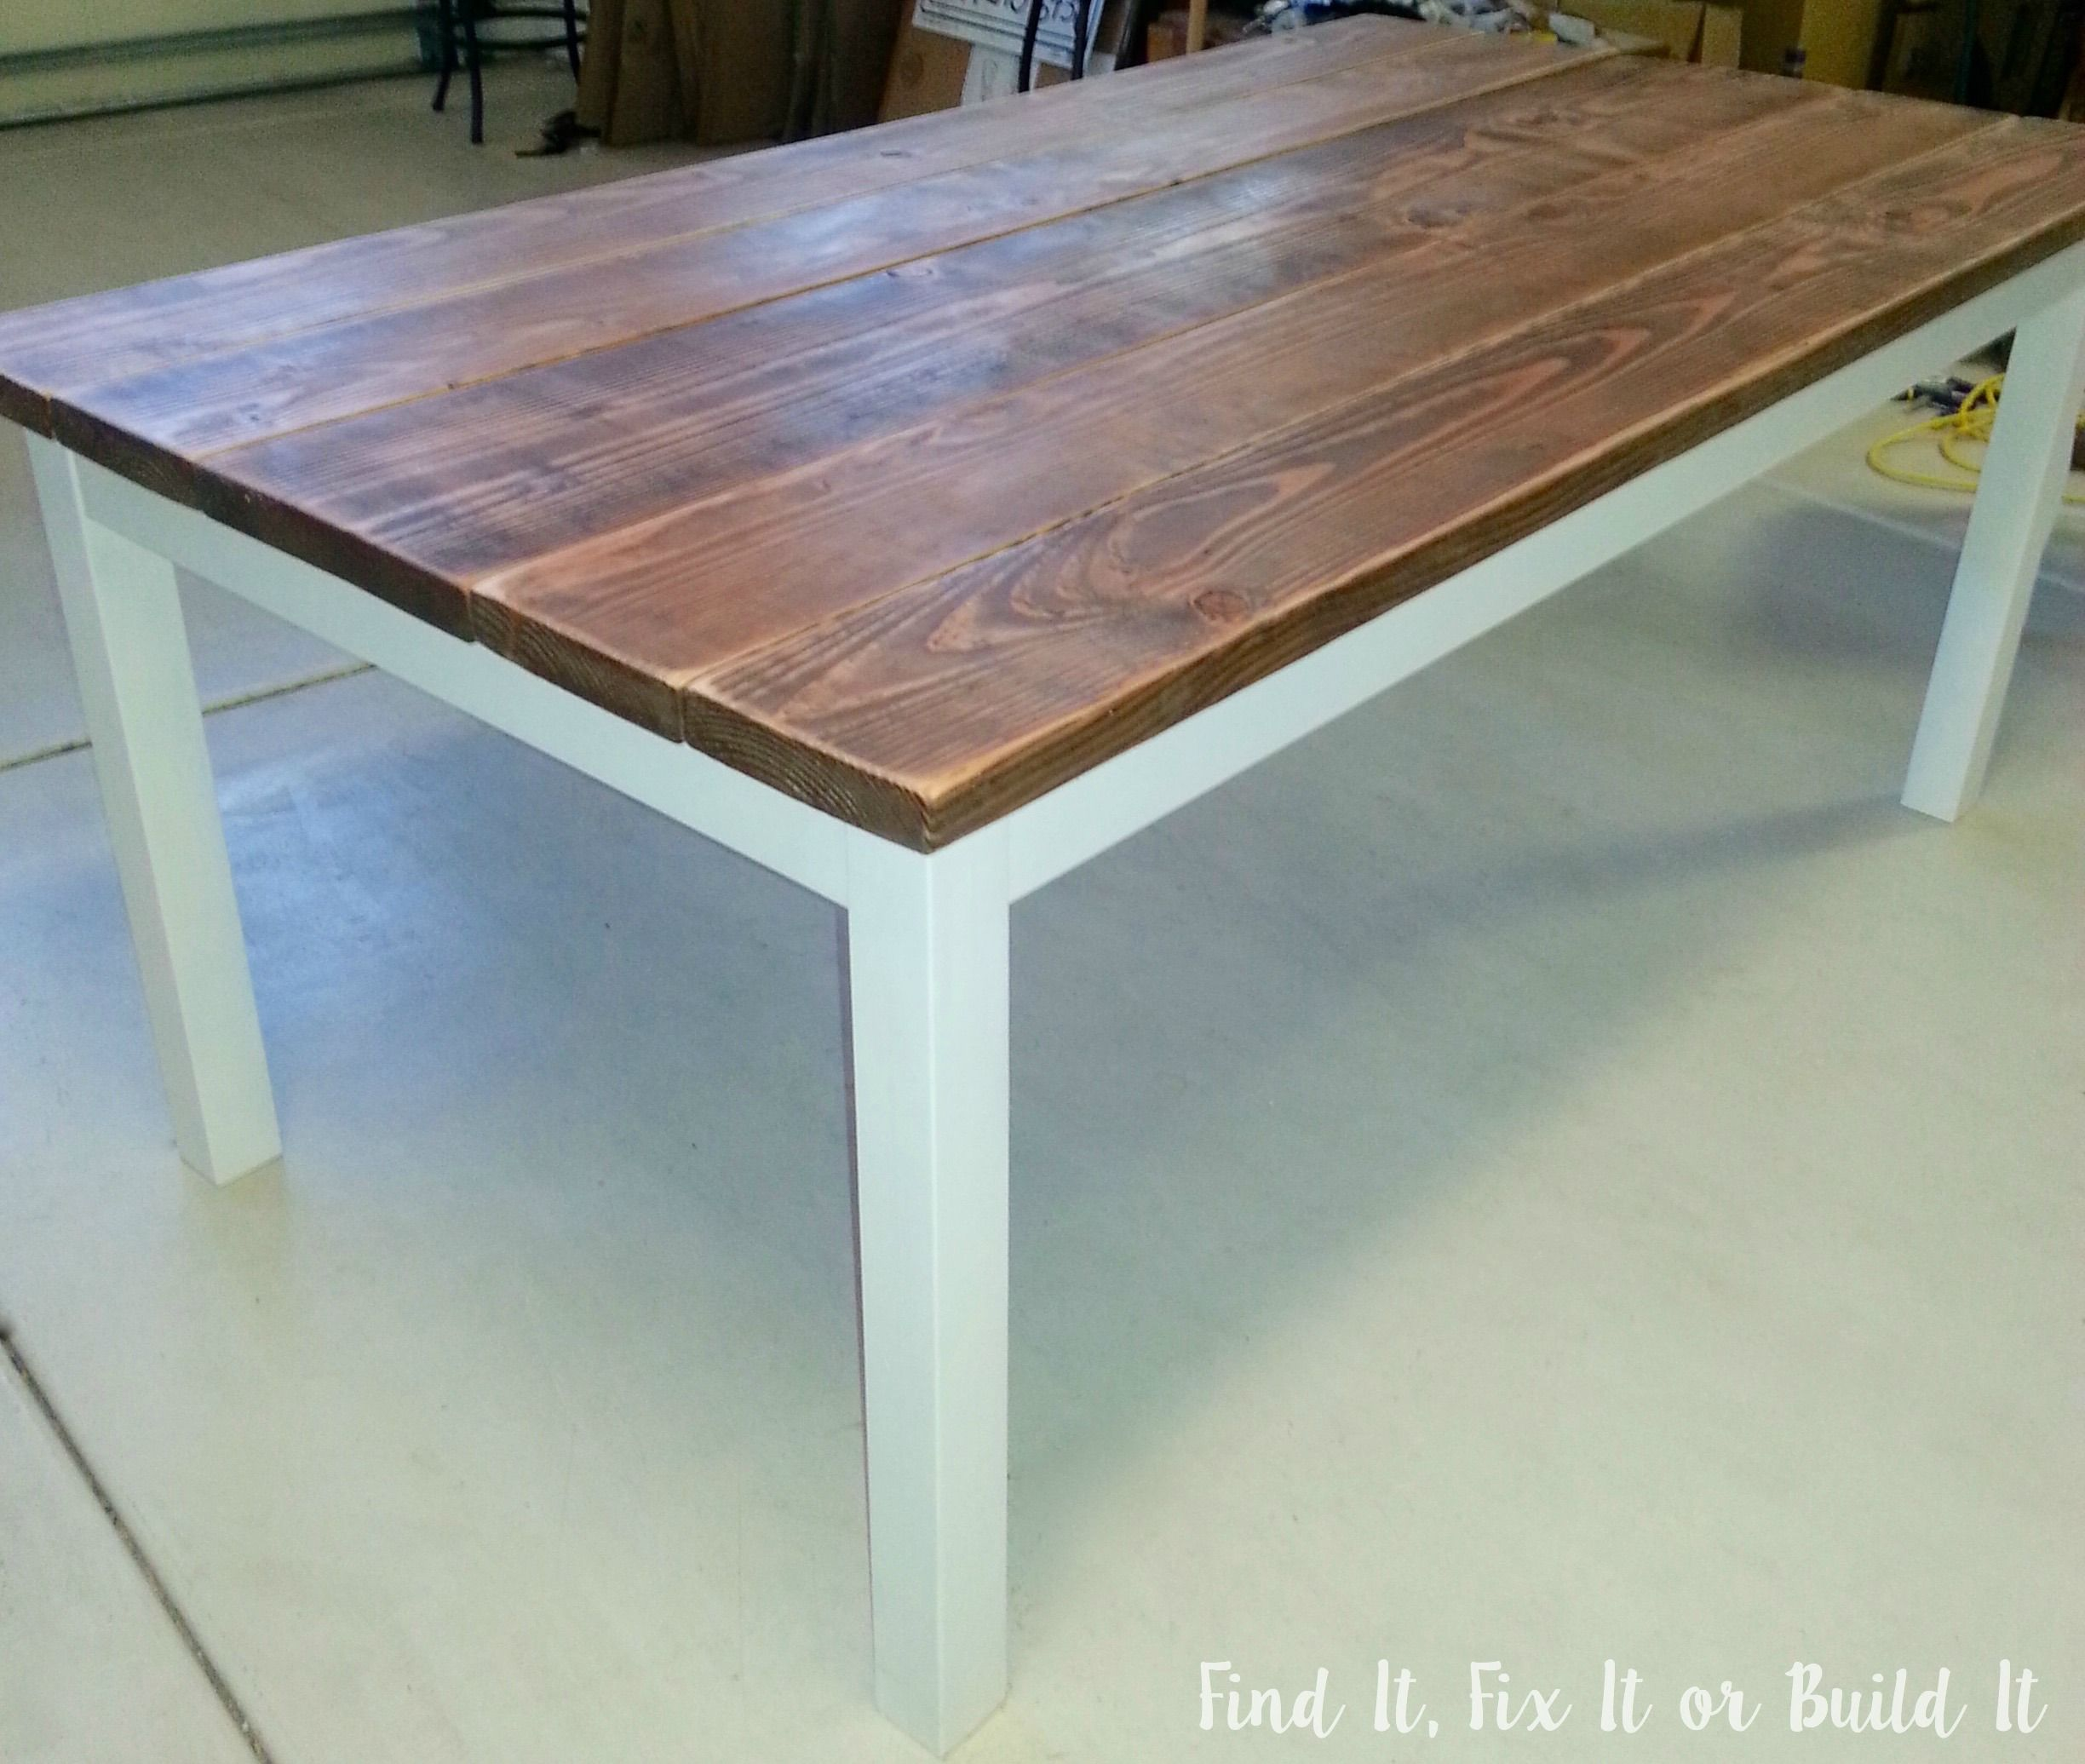 Ikea Dining Table Hack Find It Fix It Or Build It Ikea Dining